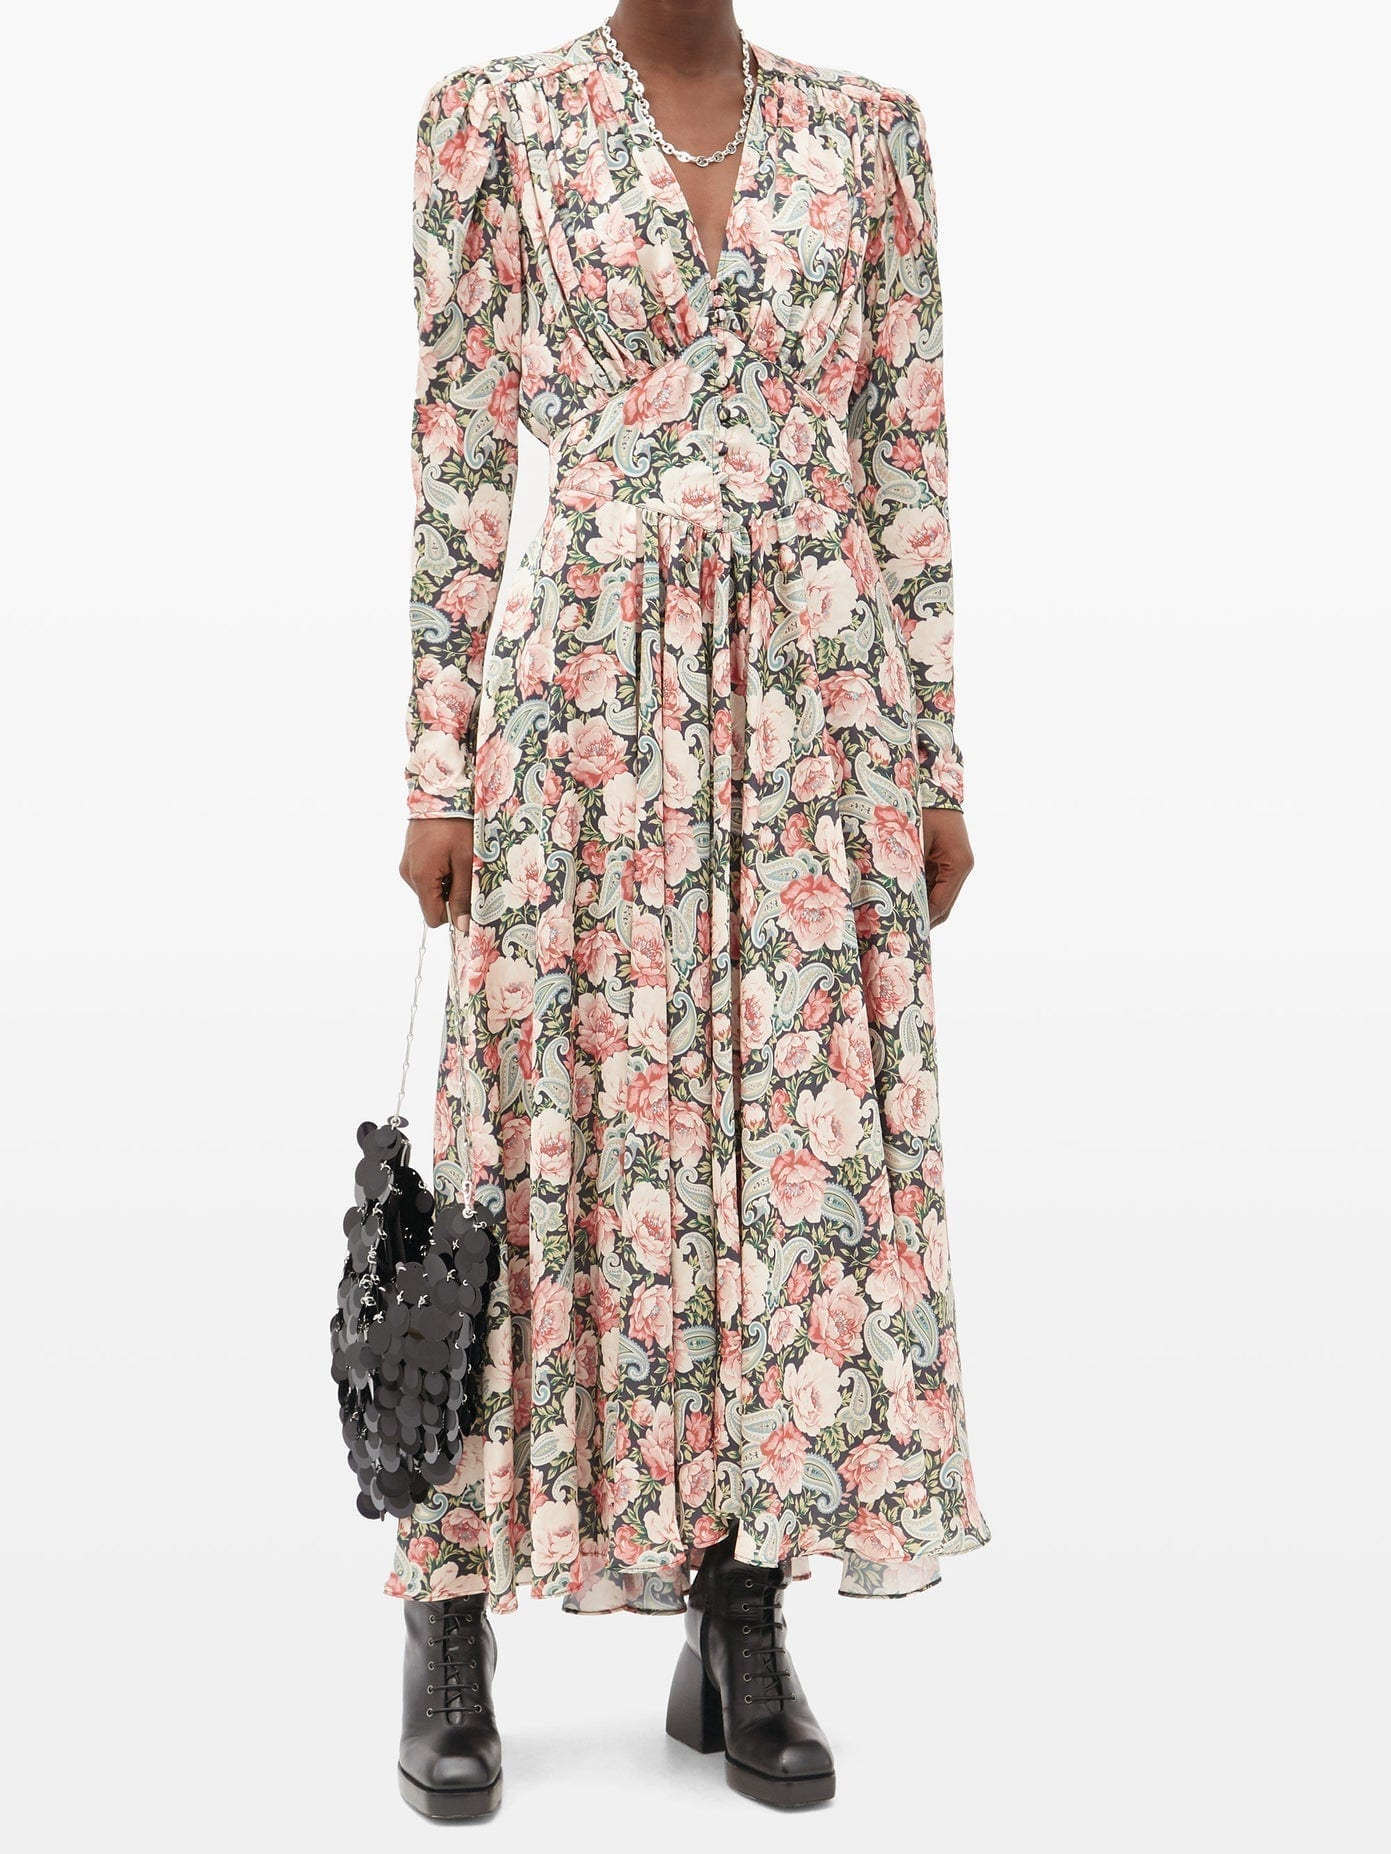 PACO RABANNE Gathered Paisley And Floral-print Satin Dress